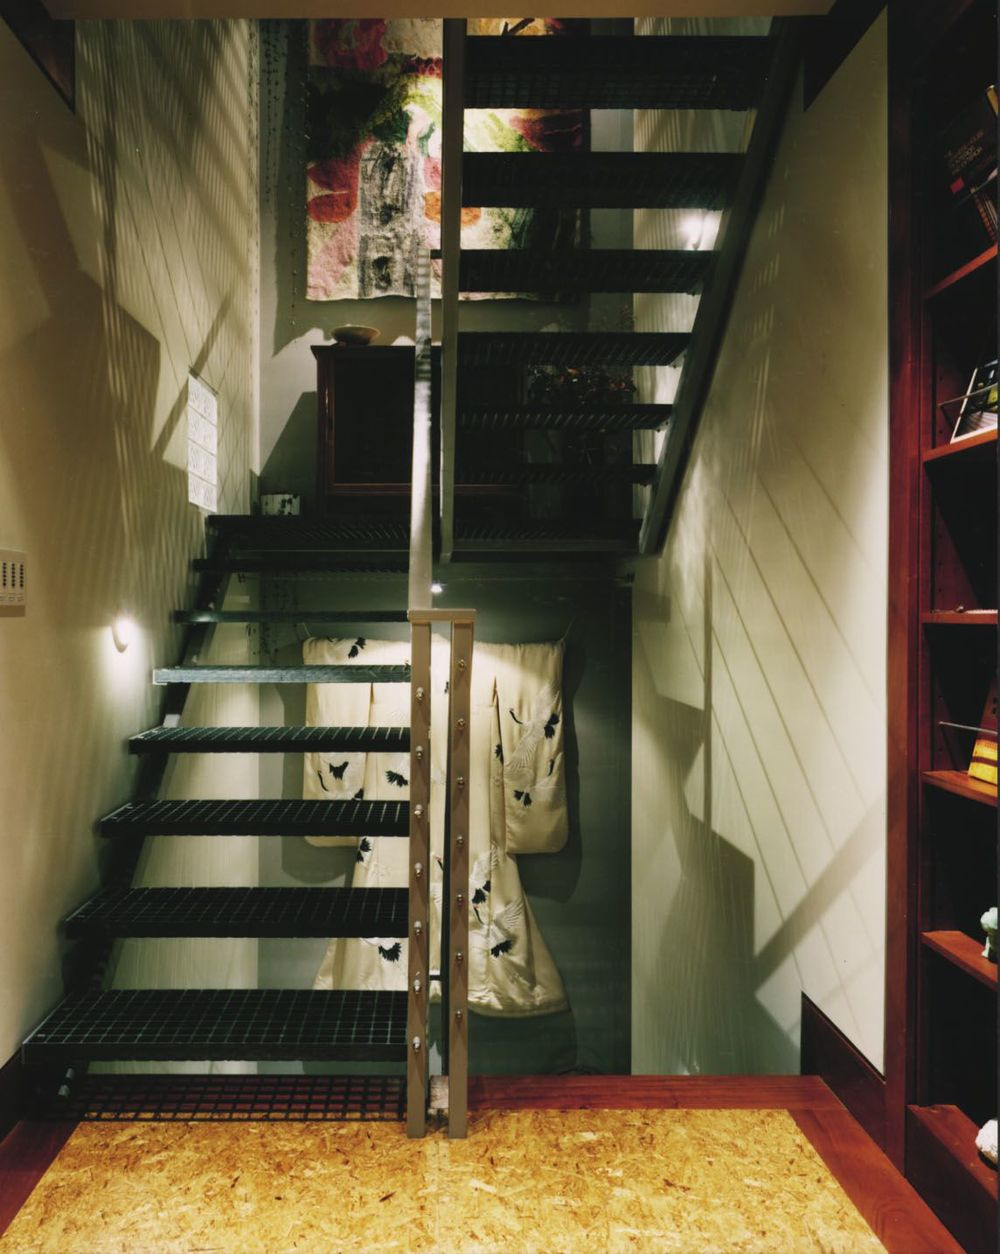 View of four-story stairwell.